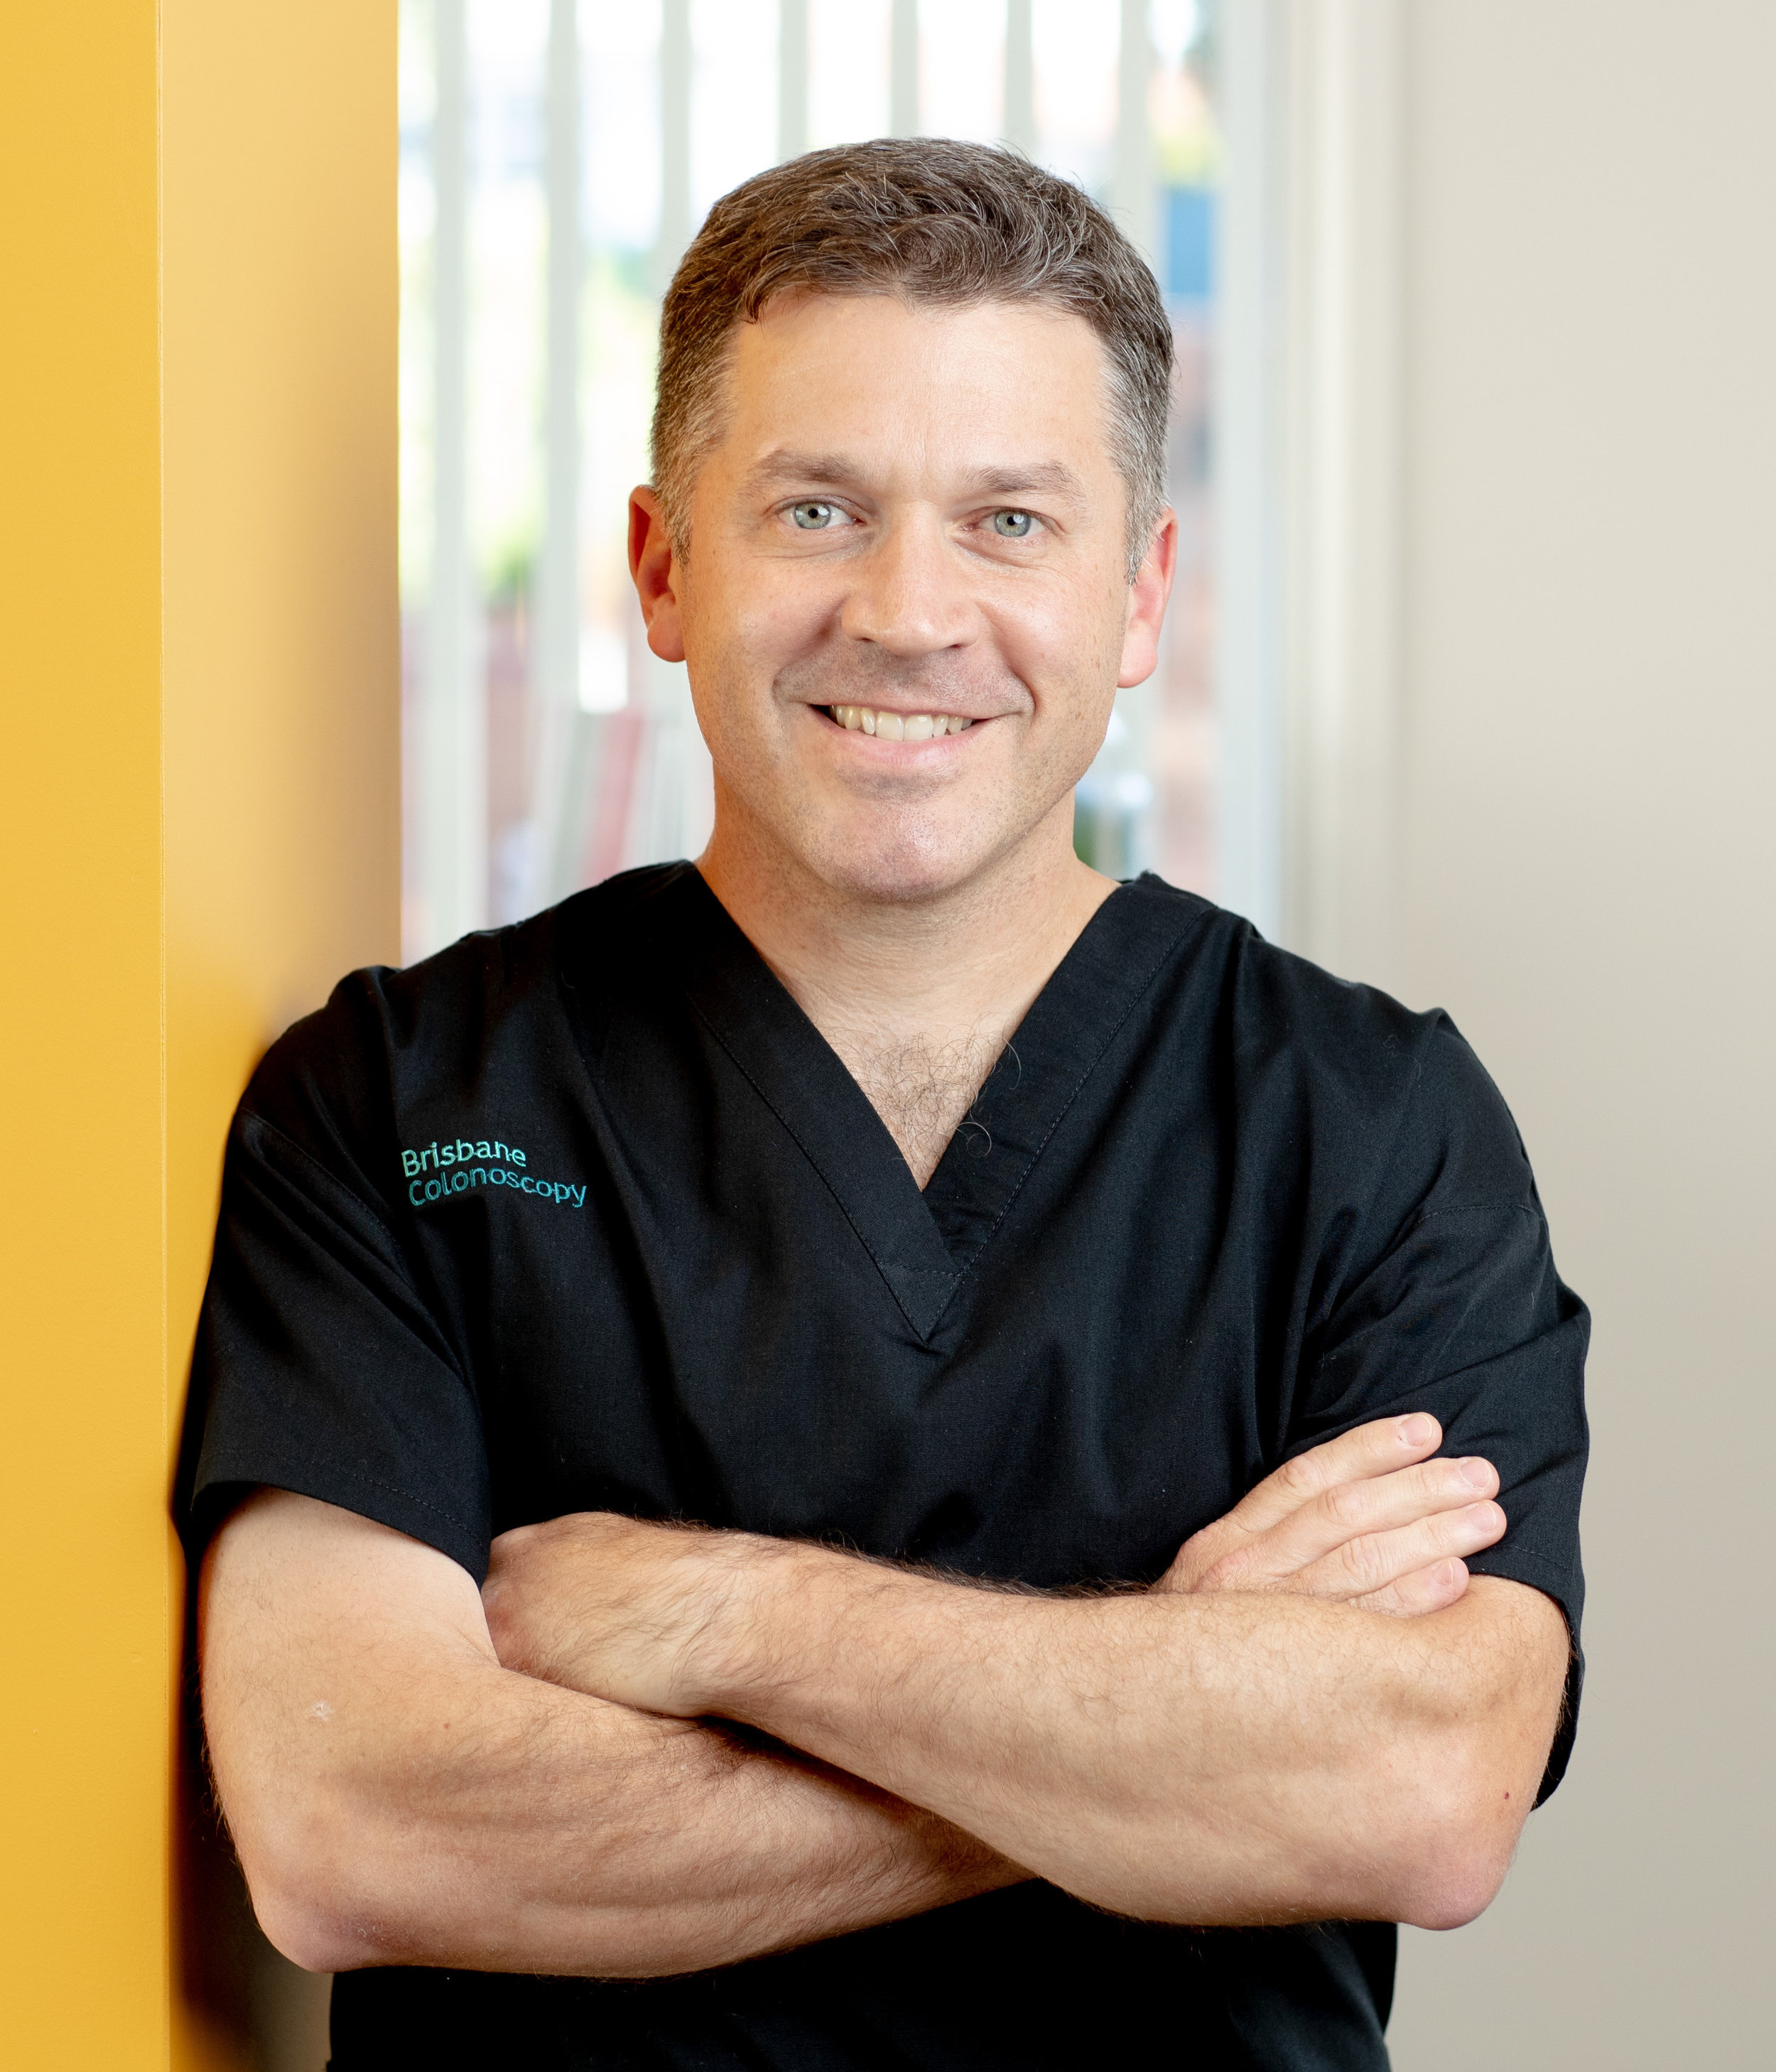 A/Prof Daniel L. WorthleyMBBS Hons Adel, PhD, MPH, FRACP - Dan was trained in Adelaide. He lived in Brisbane from 2007- 2010, completing a PhD and a Master of Public Health at UQ and working at the RBWH. Dan lived in New York from 2010-2014 working at Columbia University in gastrointestinal cancer research. Since 2015, Dan has run a bowel cancer research laboratory in Adelaide and works as a clinical gastroenterologist in private practice. Dan is a leader in gastrointestinal cancer research, with a special interest in colorectal cancer screening and prevention.